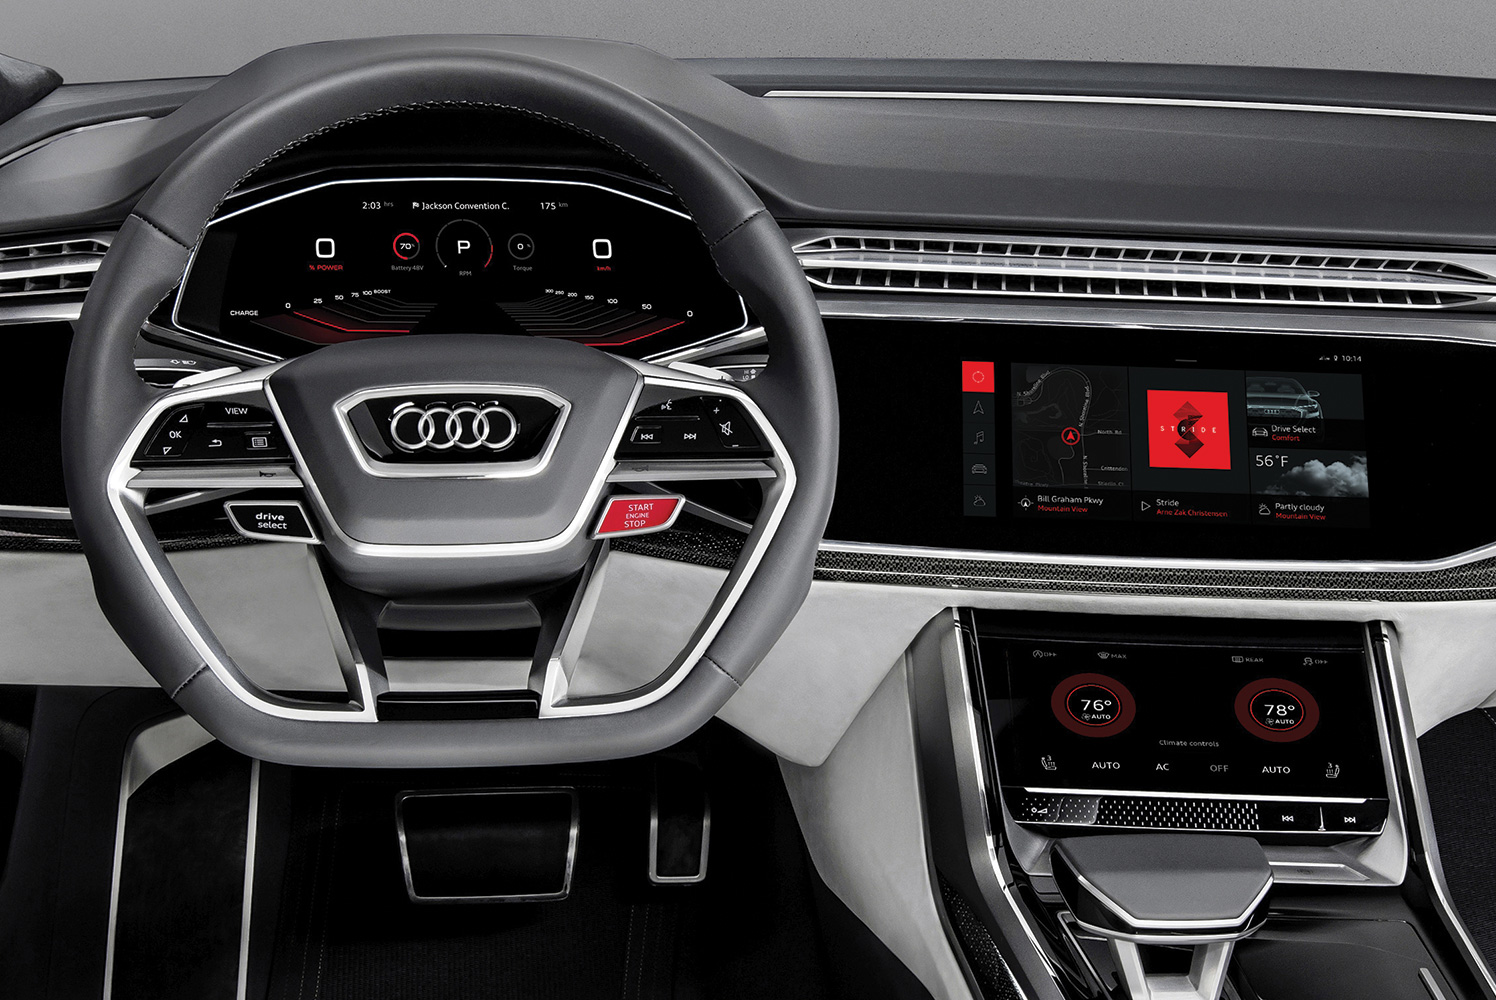 Audi Chooses Android for Future Infotainment